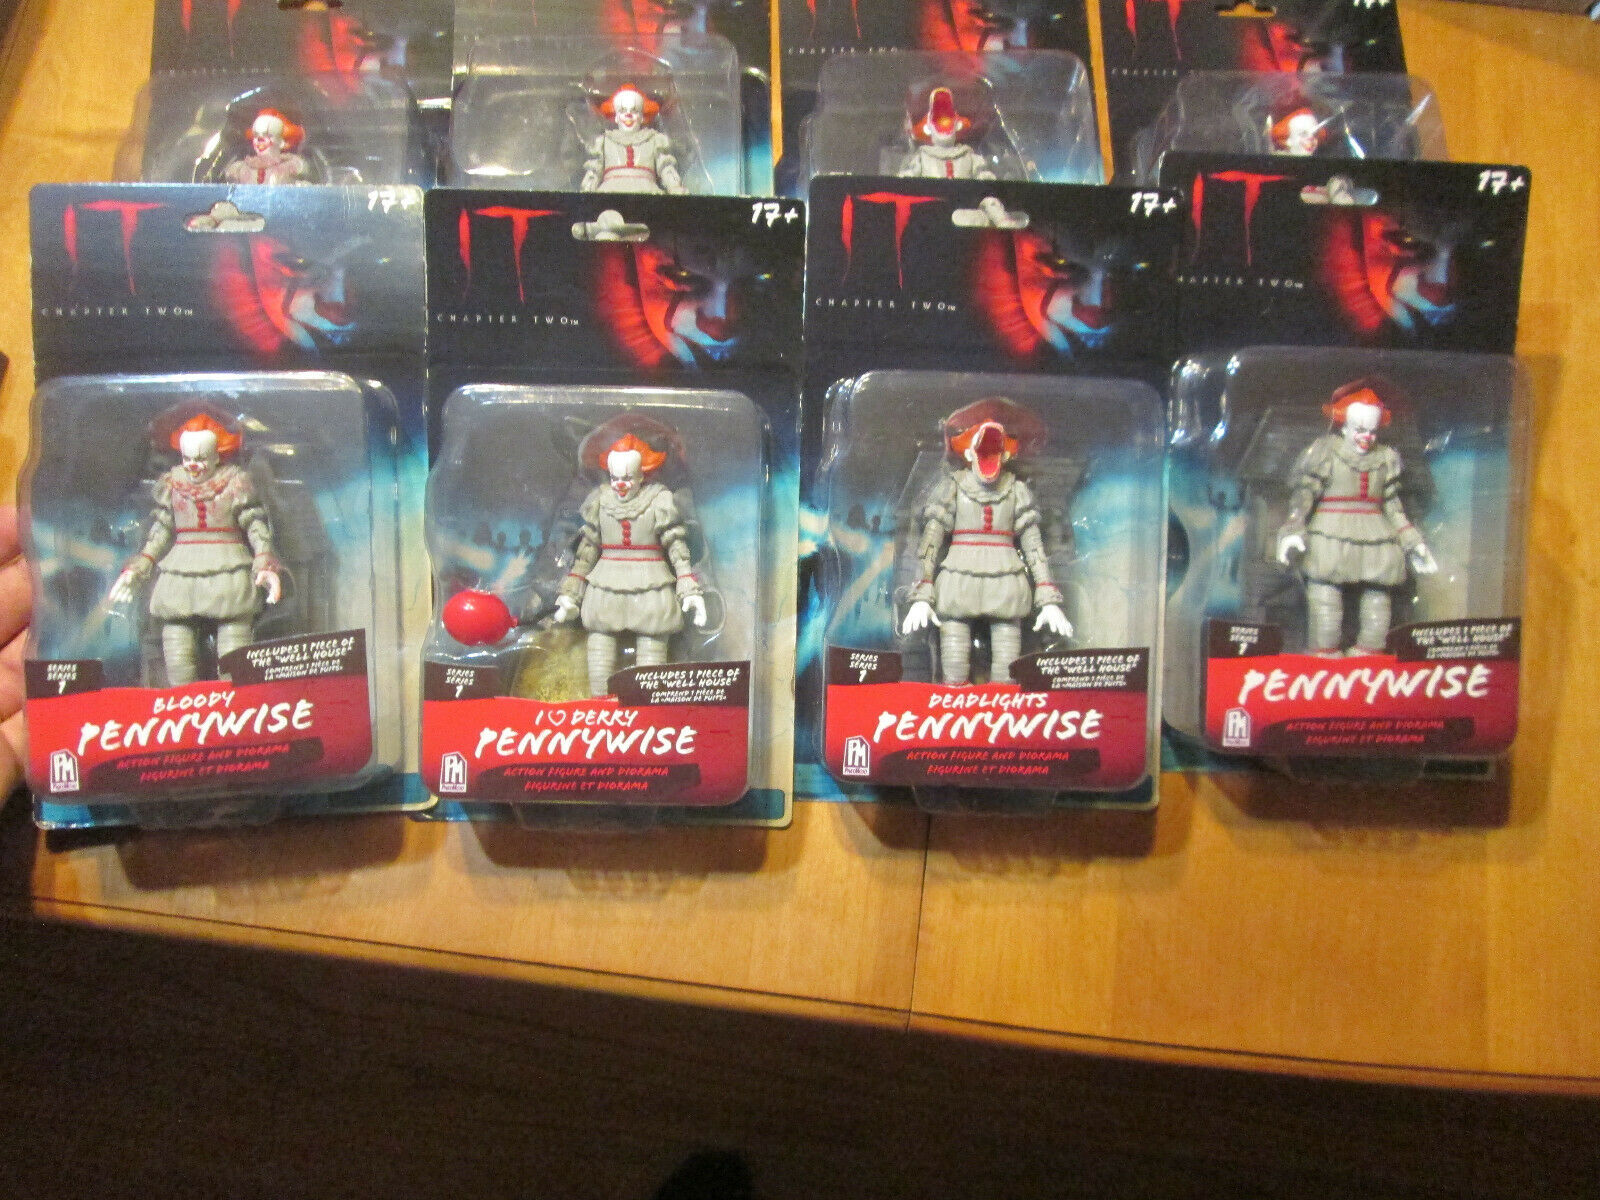 IT CHAPTER TWO SERIES 1 PENNYWISE FIGURE DIORAMA PhatMojo COMPLETE COLLECTION